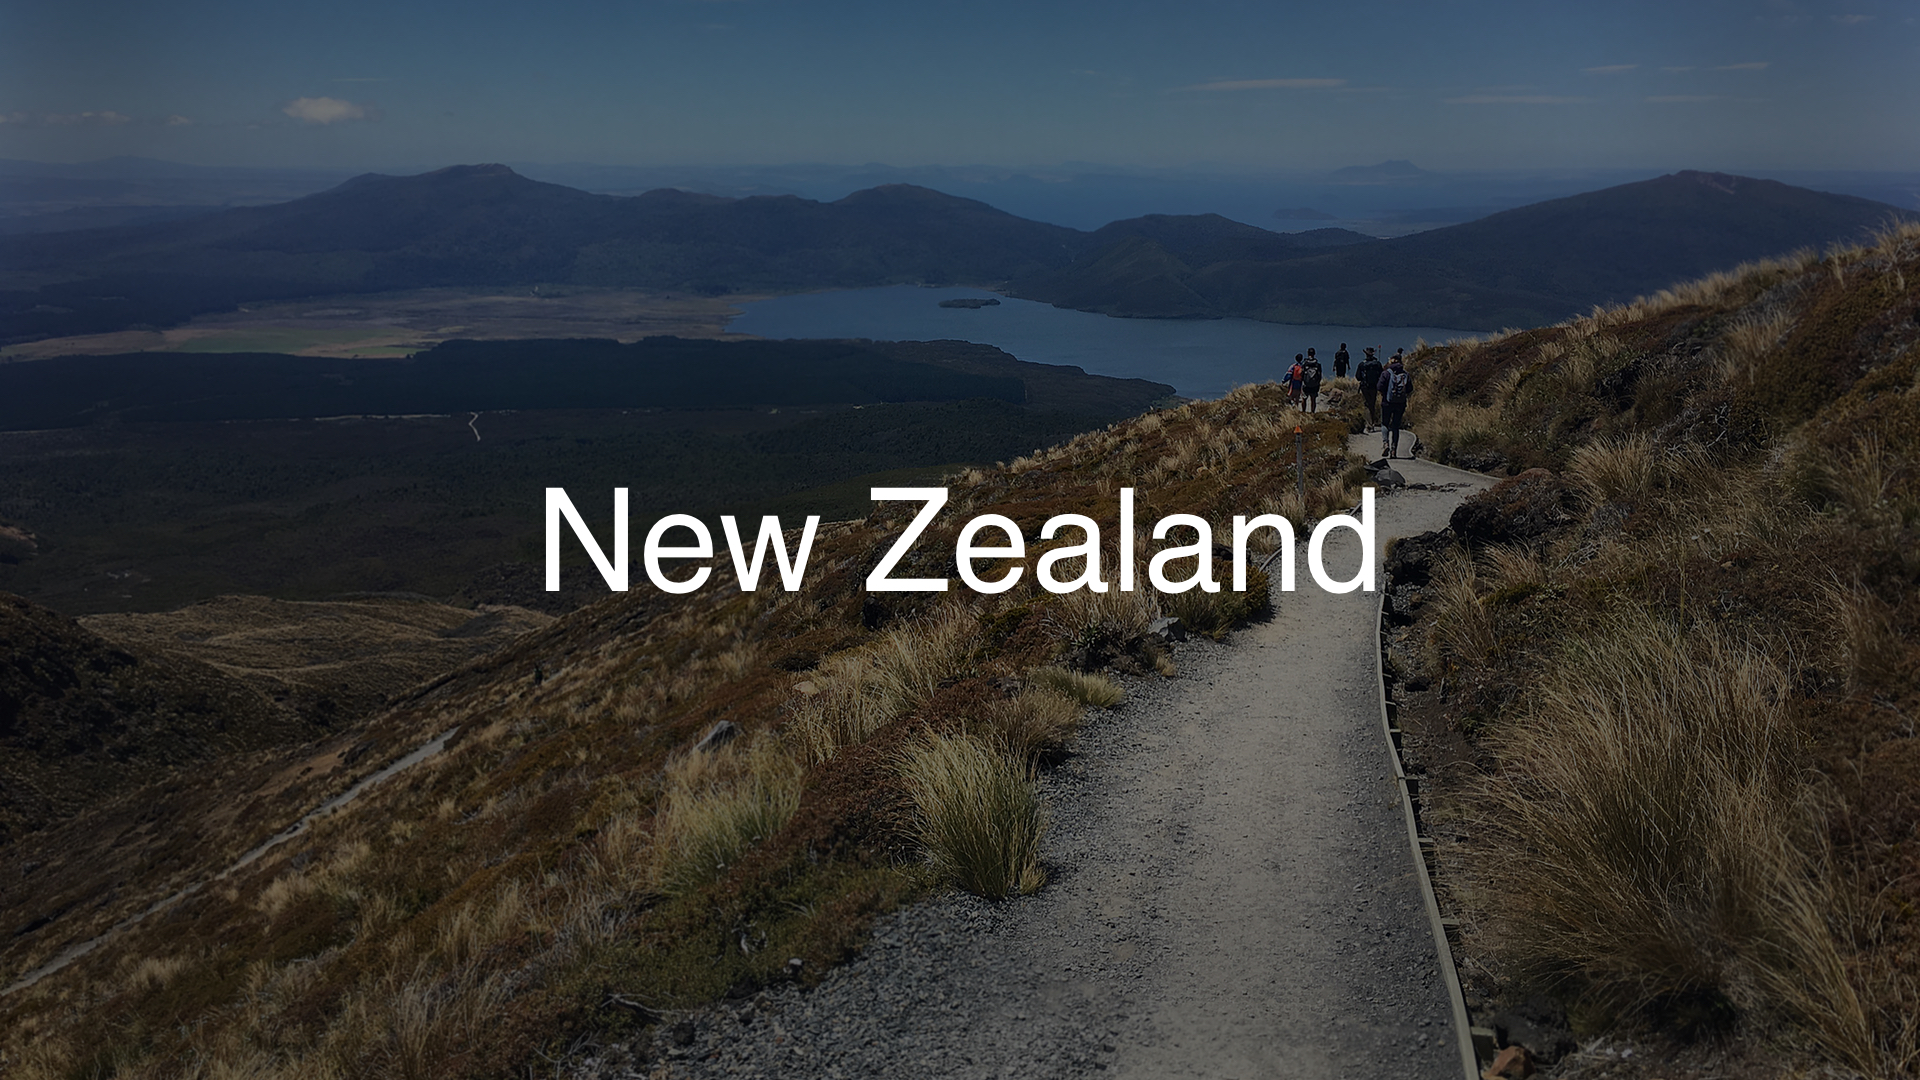 New Zealand Gallery Header 1920x1080 Dark